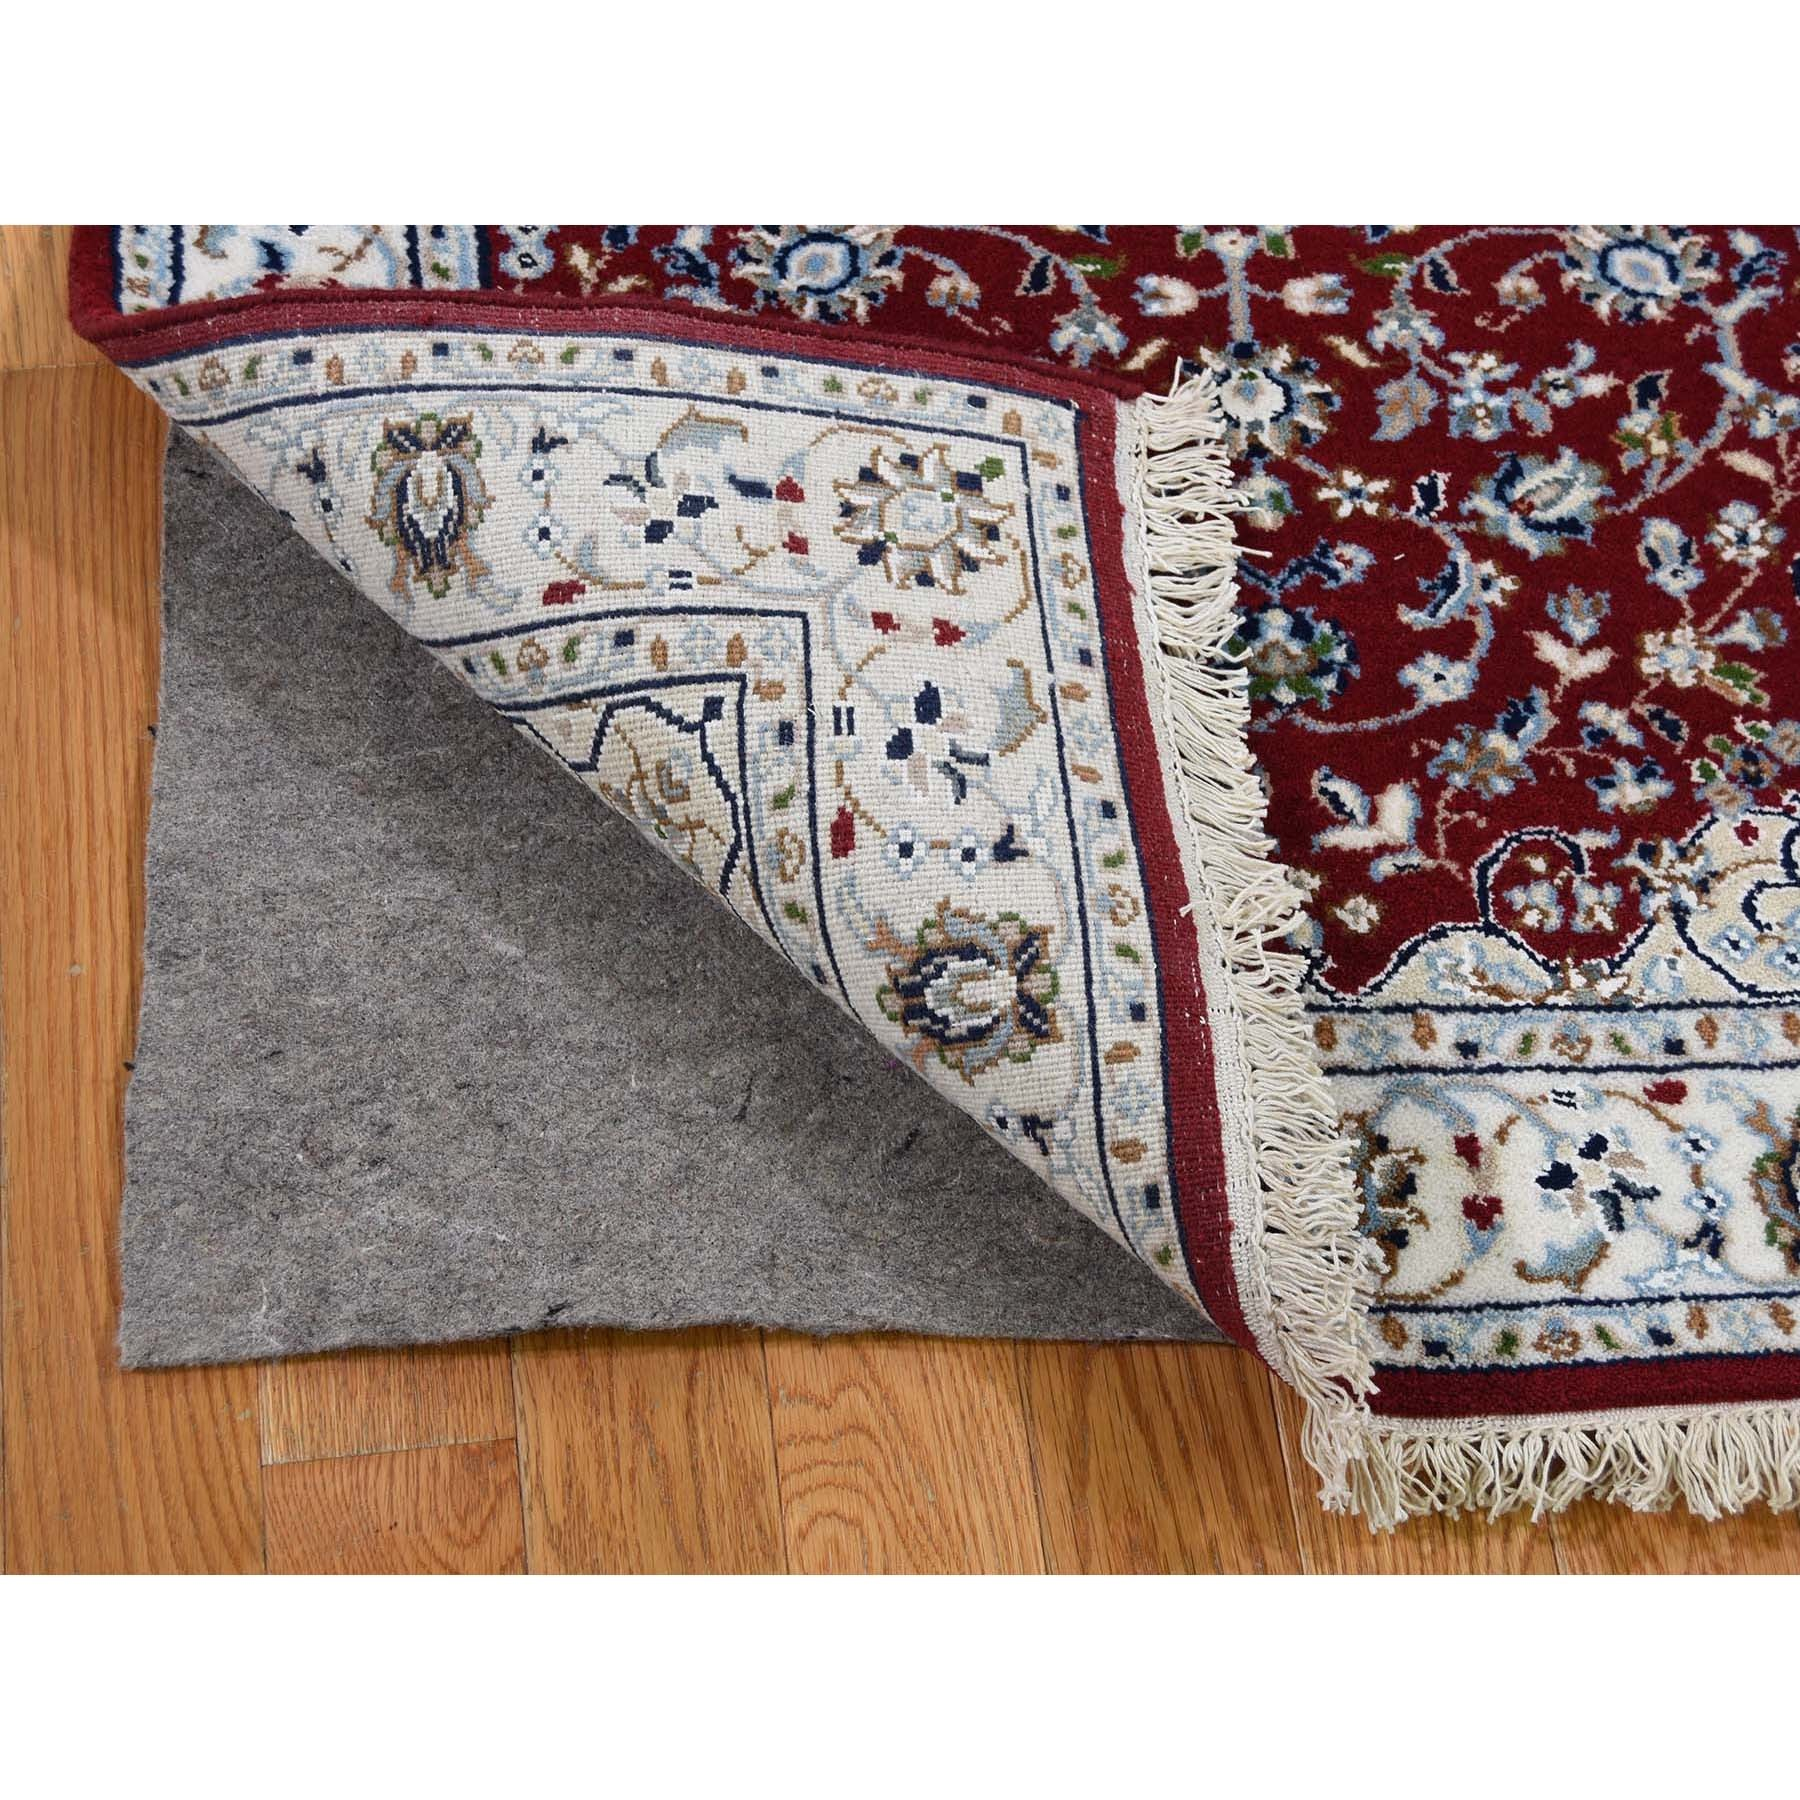 """2'5""""x6'1"""" Wool And Silk 250 KPSI Red Nain Hand-Knotted Oriental Runner Rug"""